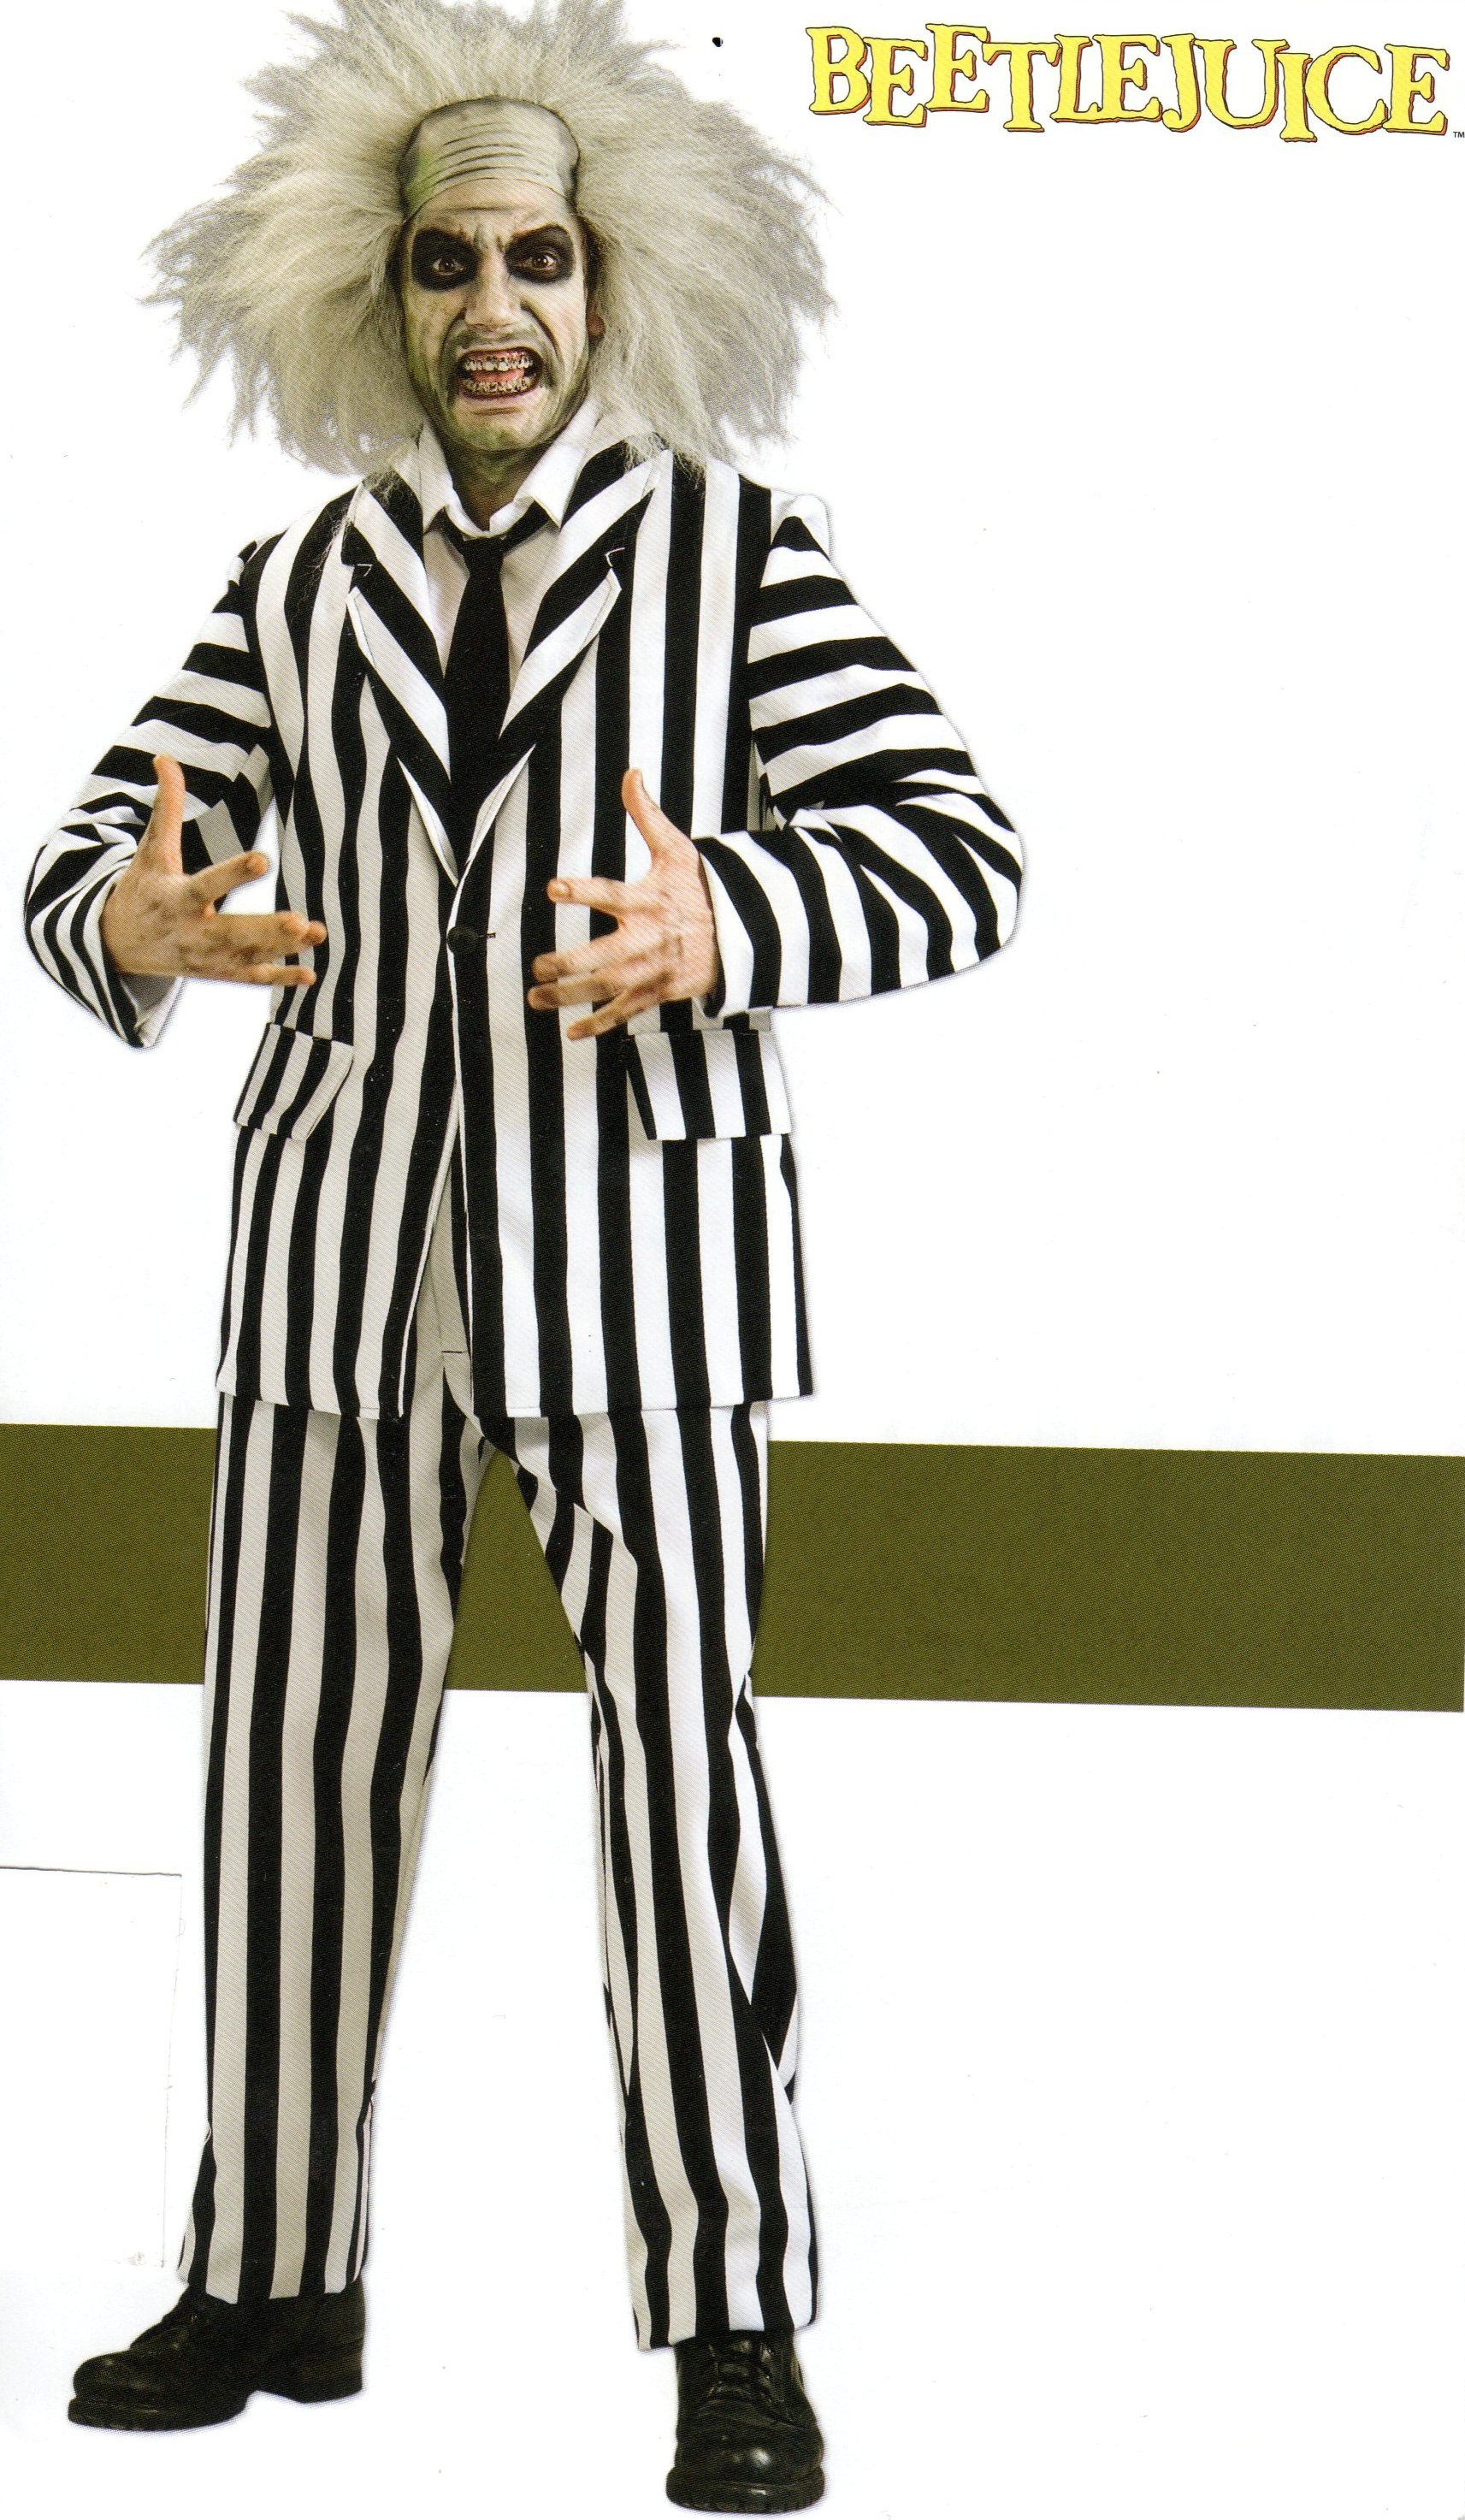 Movie Character Costumes - Beetlejuice - American Costumes Las Vegas